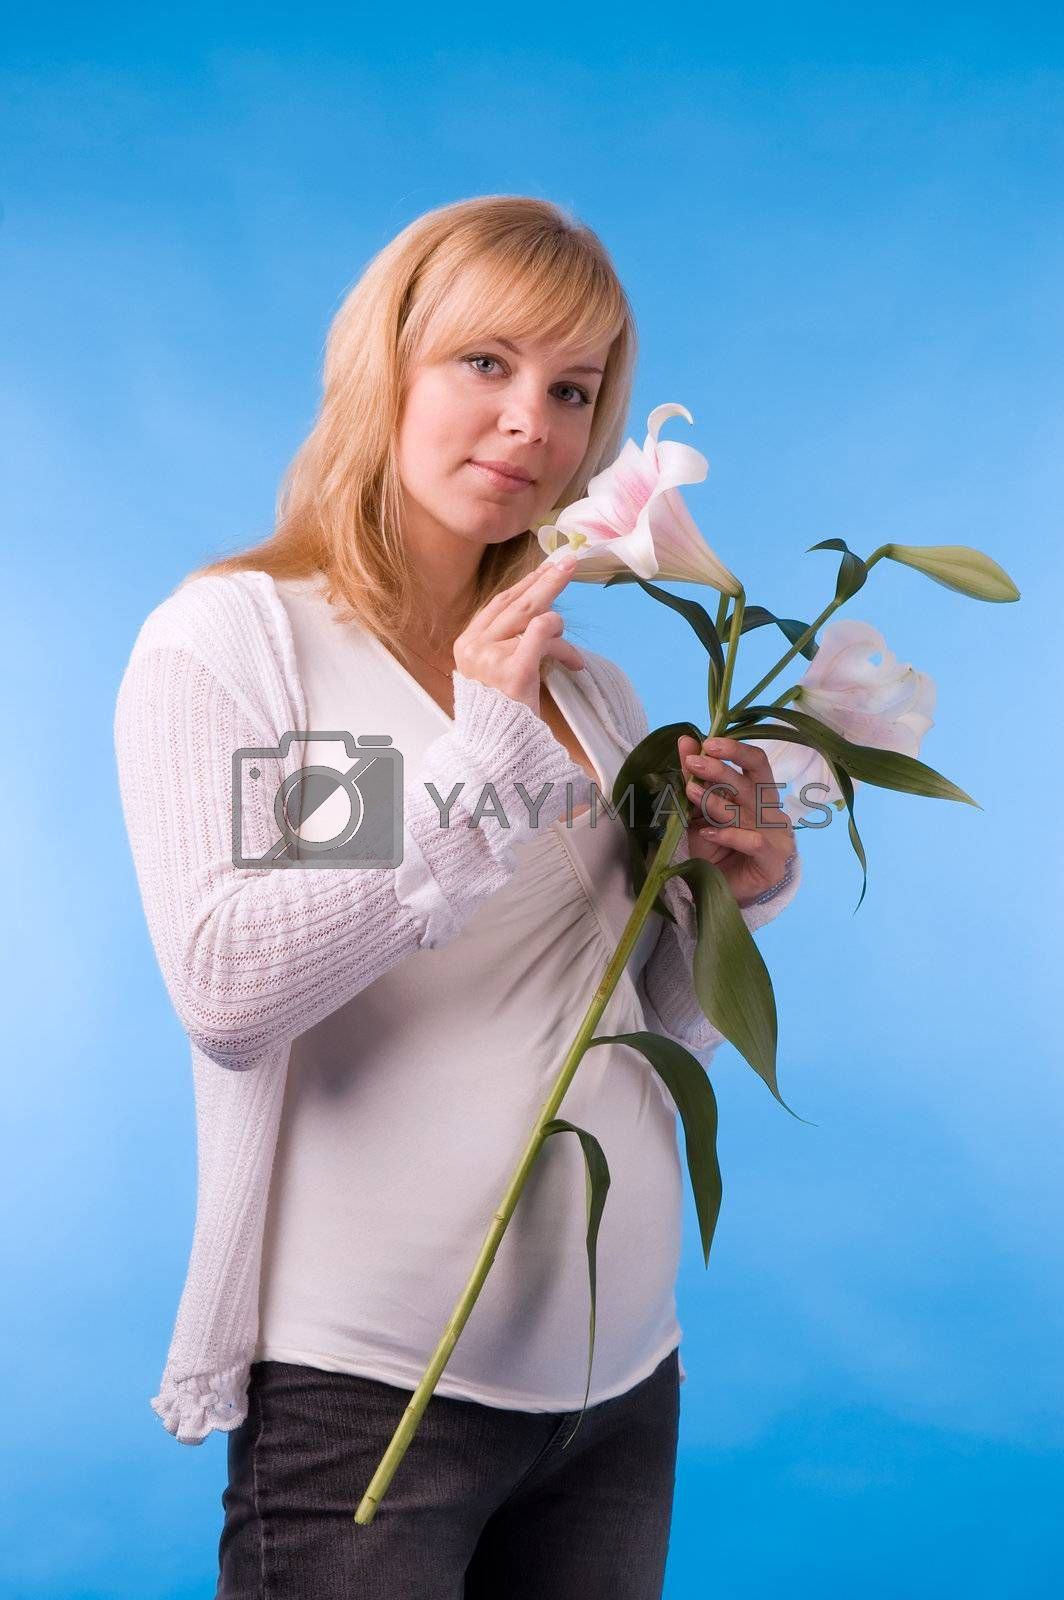 The fine pregnant woman with a bouquet of flowers in hands